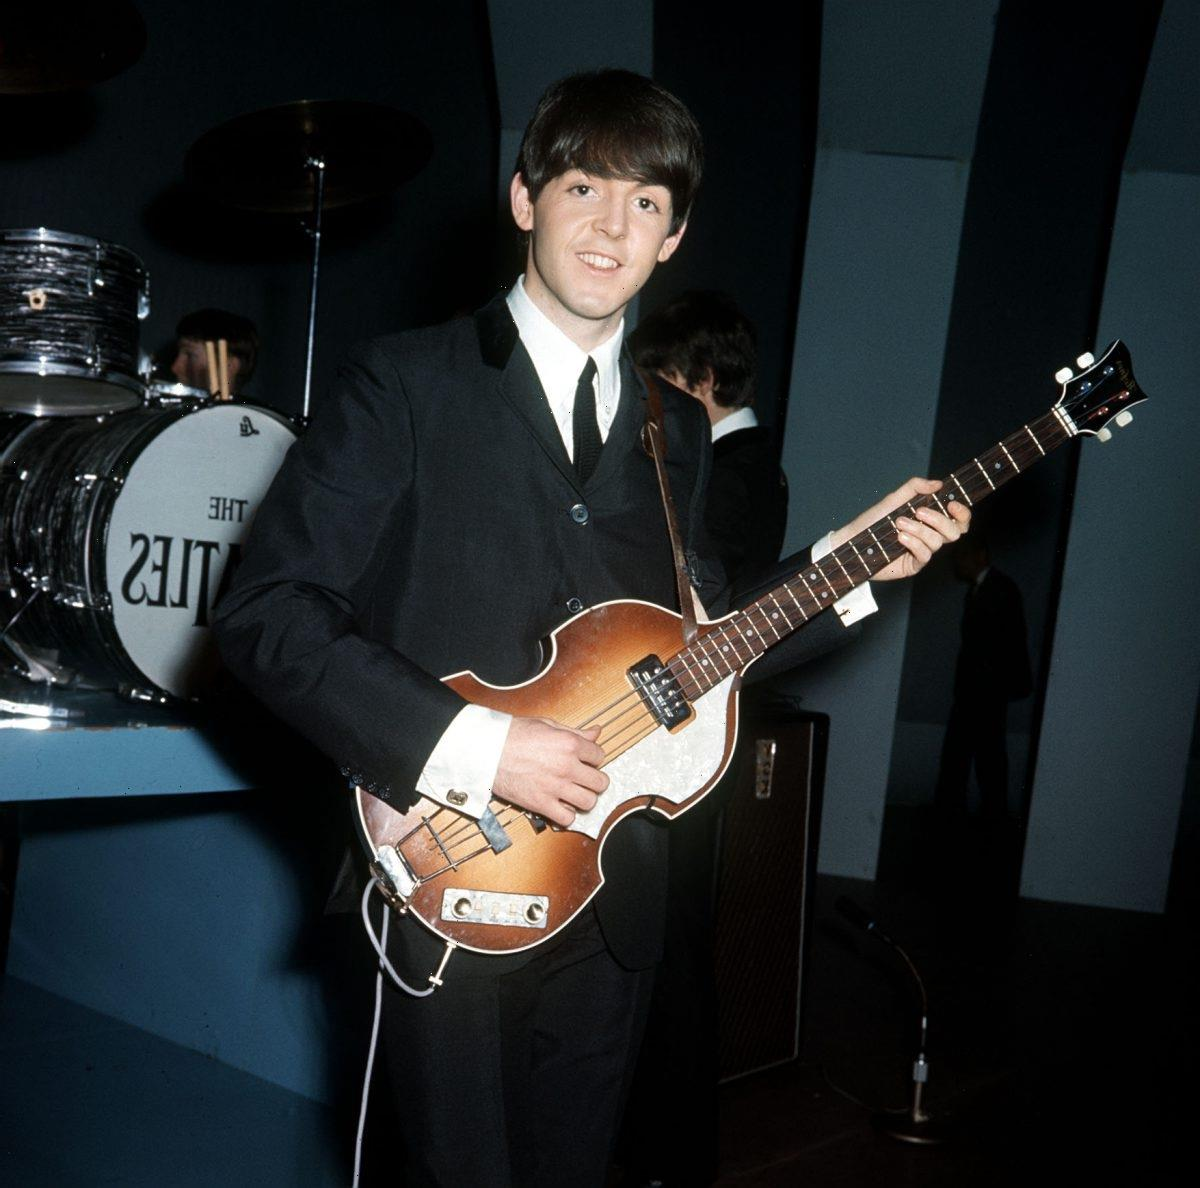 The Beatles: Paul McCartney Once Felt He Could Never Perform This 'Sgt. Pepper' Song Live